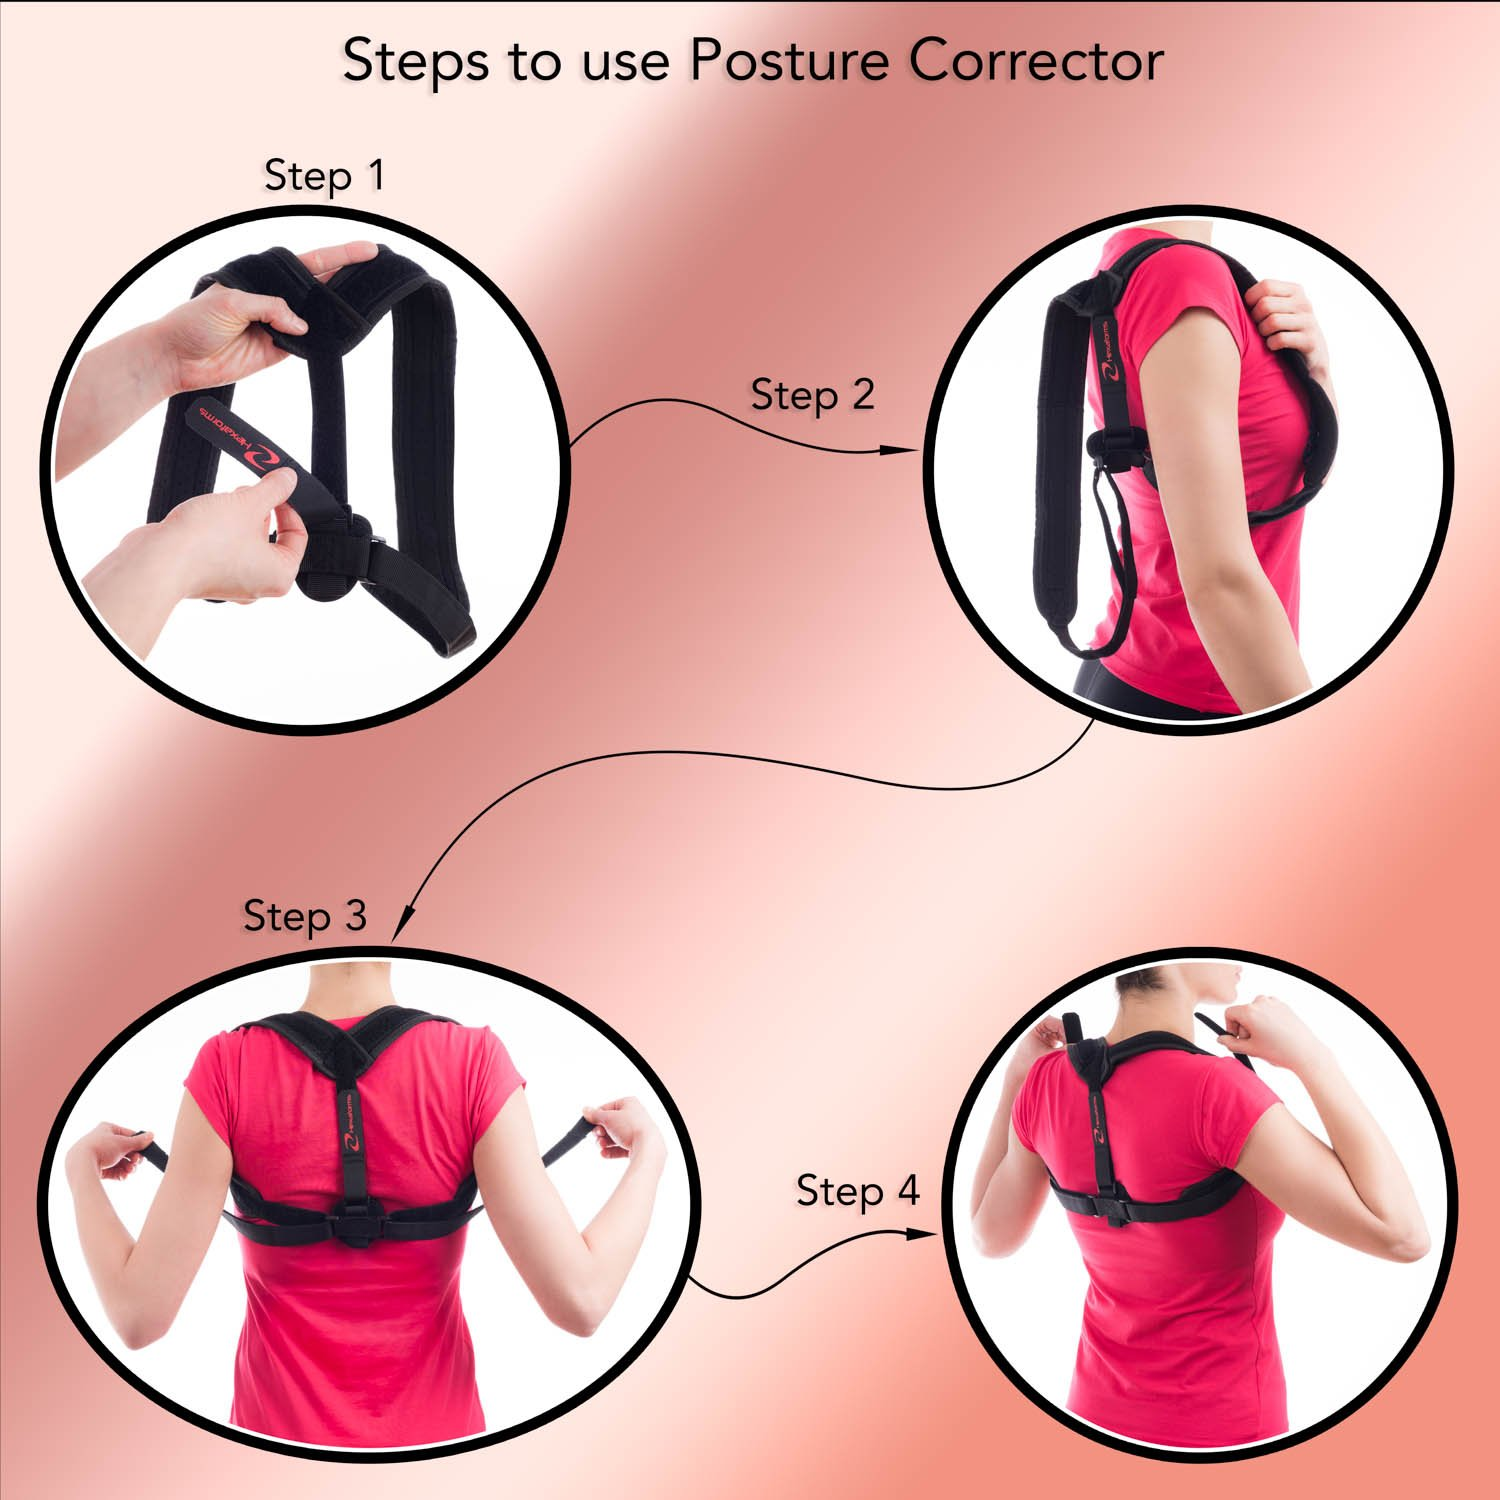 Hexaforms Back Posture Corrector for Women & Men - Effective and Comfortable Posture Brace for Slouching and Hunching - Clavicle Support for Upper Back & Shoulder Pain Relief - Medical Problems by Hexaforms (Image #6)